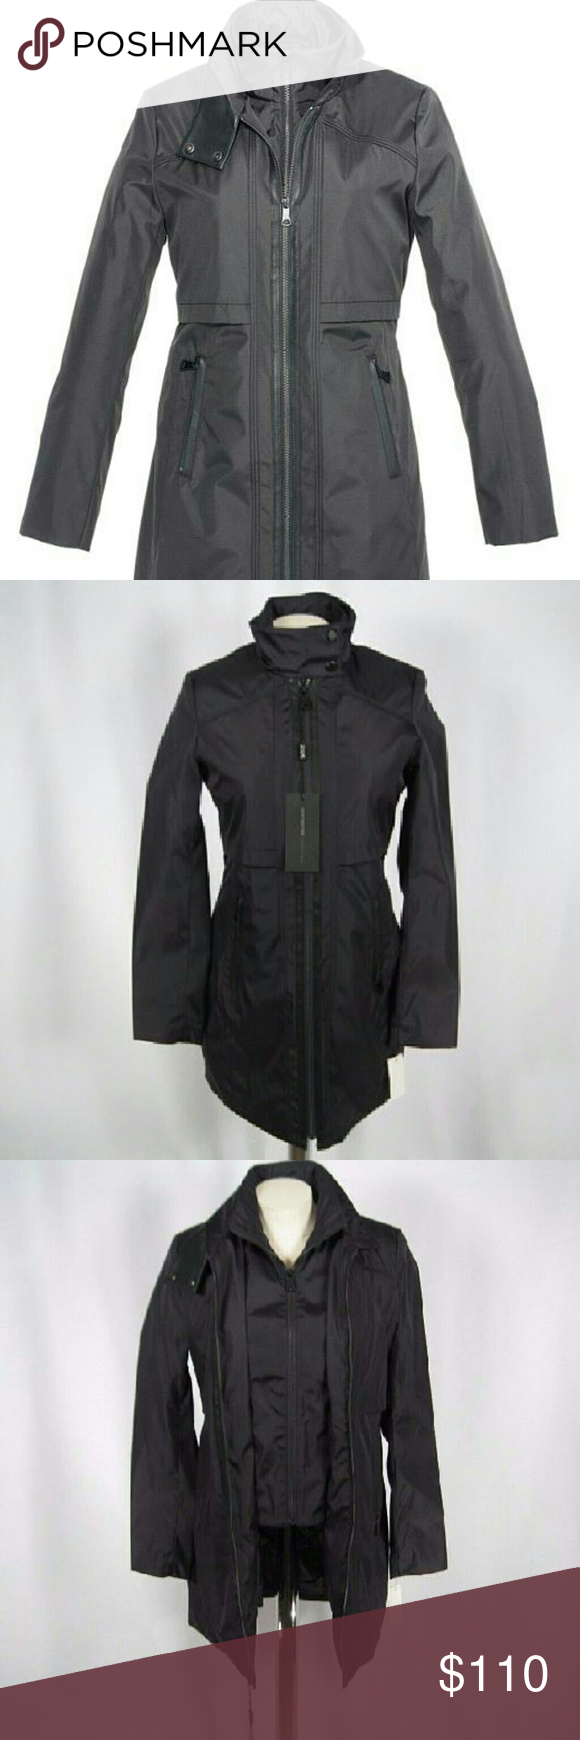 Marc New York  Womens Carey Rain W/bib Raincoat Just because it's raining doesn't mean you can't look your best! Classic rain trench with a removable rain bib. Polyester fabrication offers light protection from the elements. Faux-leather trim adds a bit of style to a rainy day. Inner hand pocket to keep all your valuables dry. Full front-zip closure on jacket and bib; dual-snap tab at collar on jacket. Color: Ink  Hand pockets with zipper closure. Marc New York by Andrew Marc? Jackets…